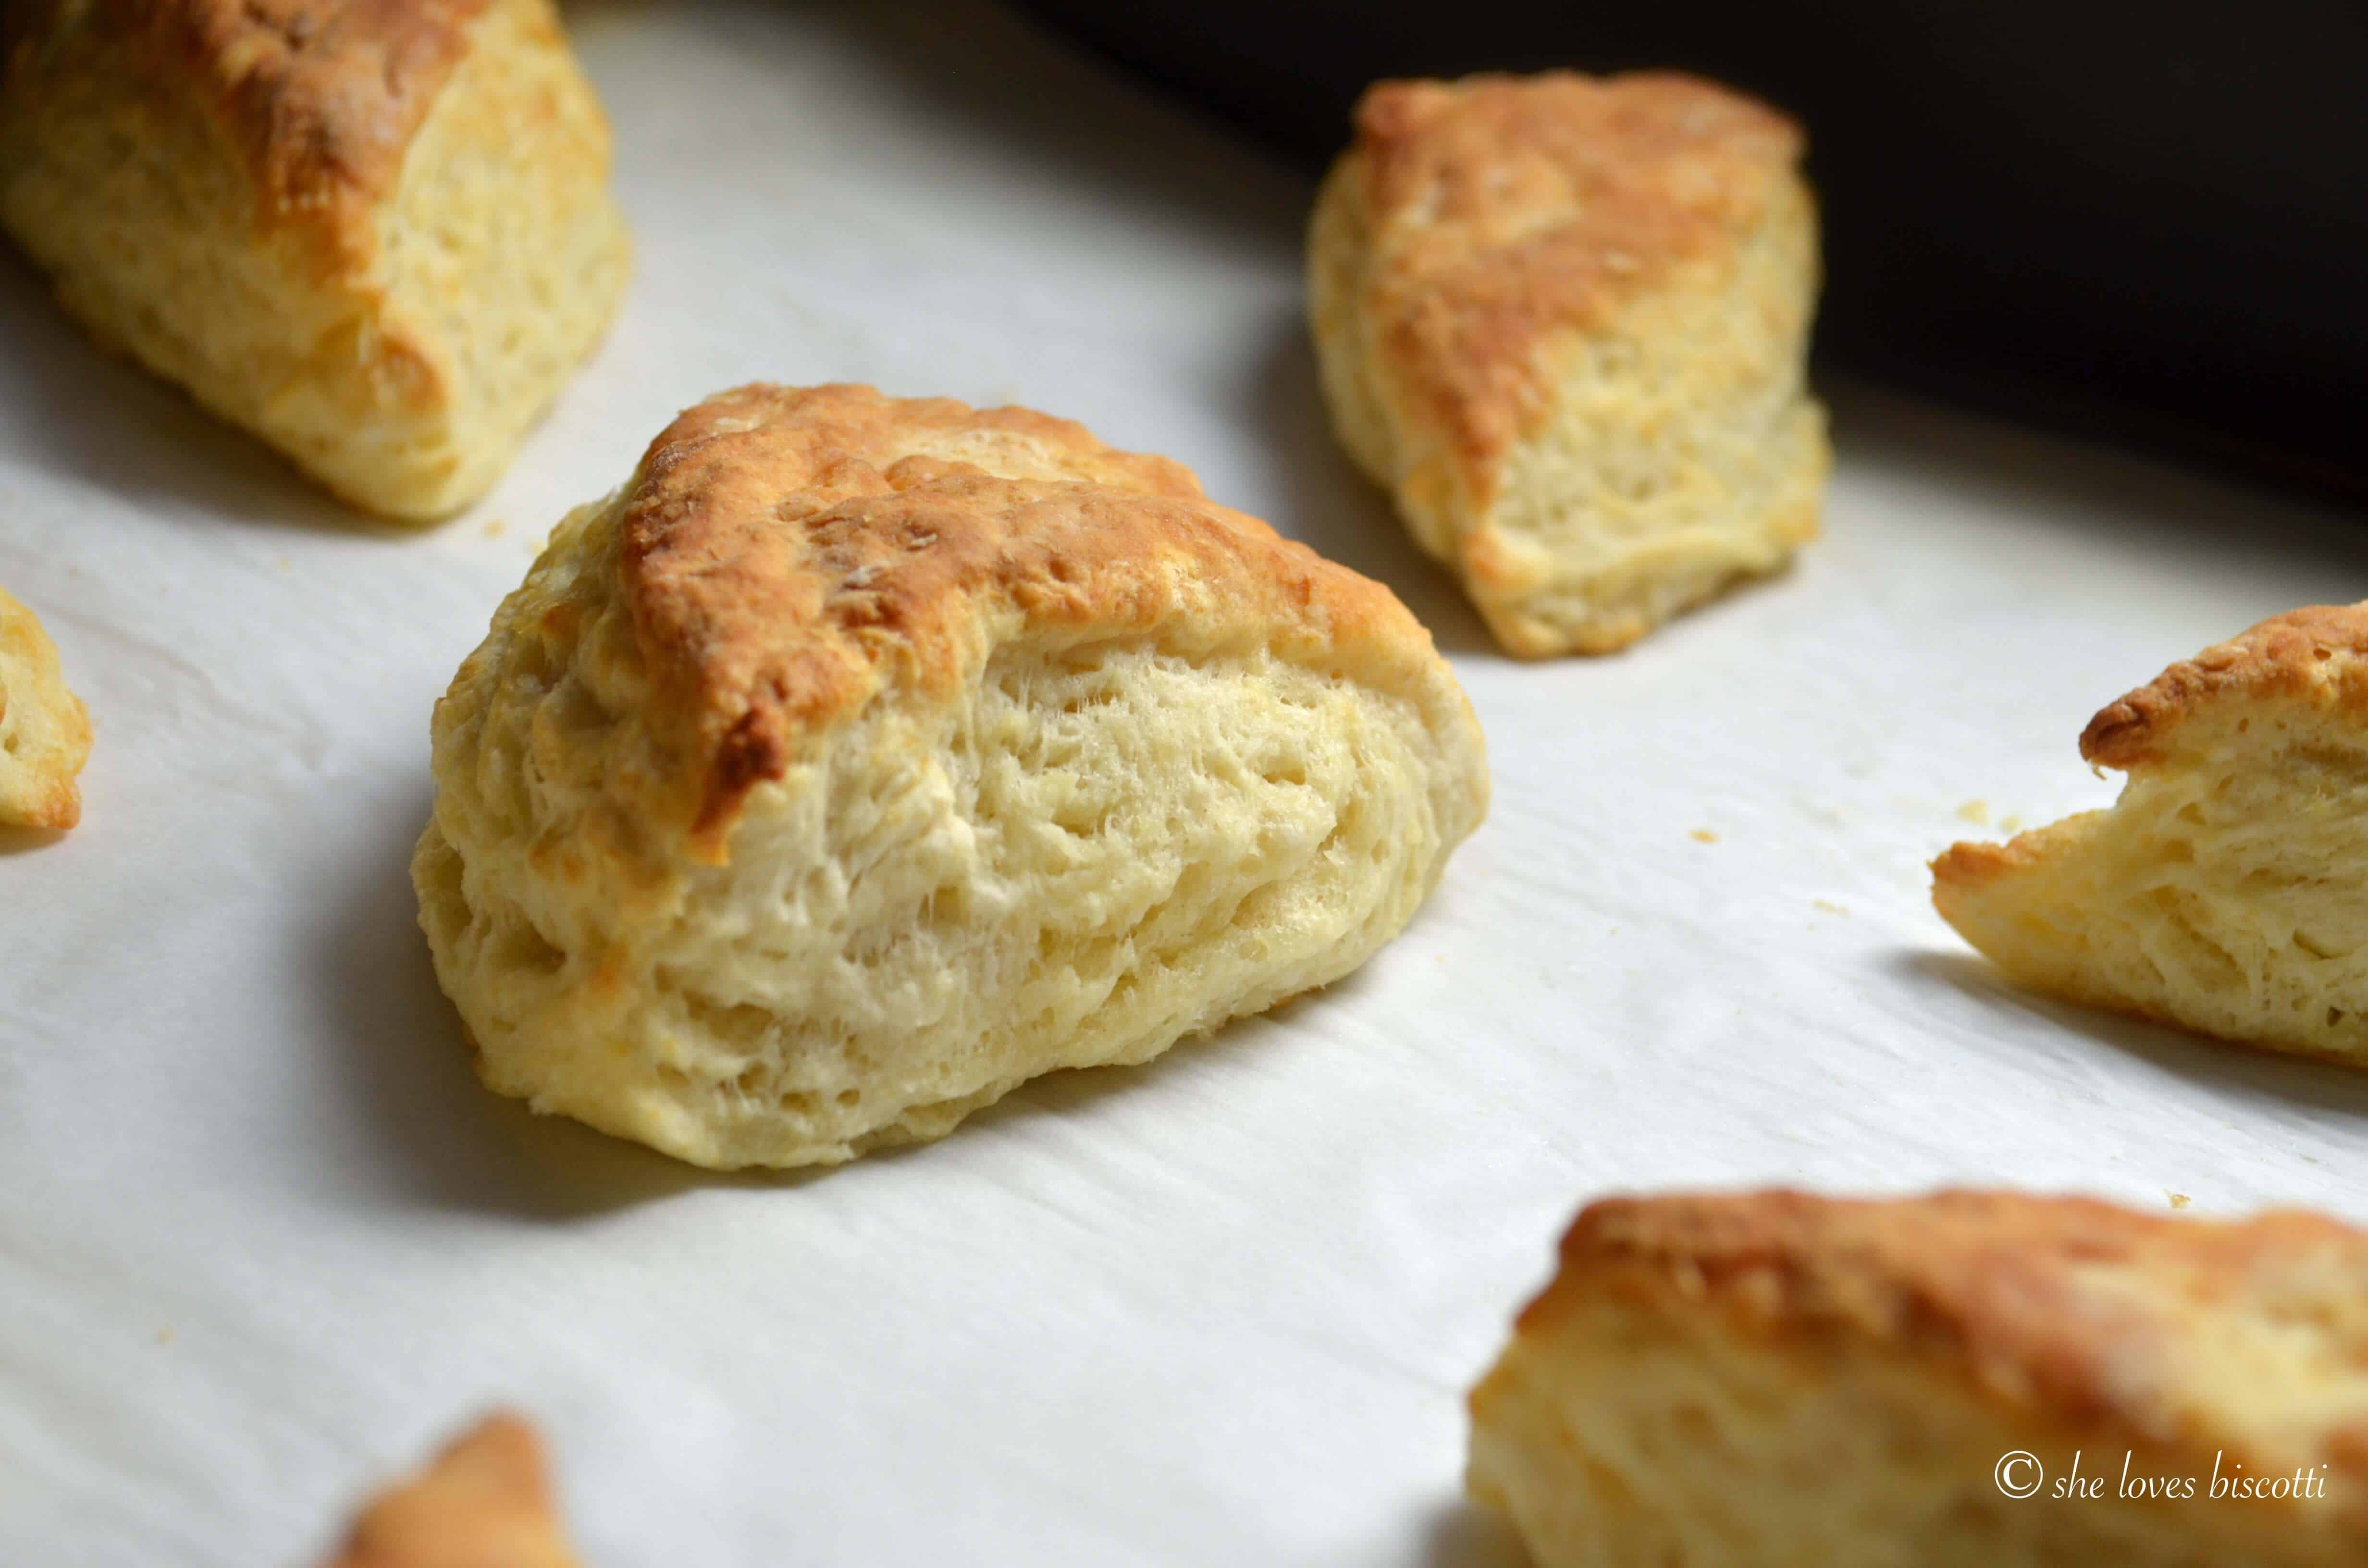 Buttermilk biscuits on a parchment lined baking sheet.